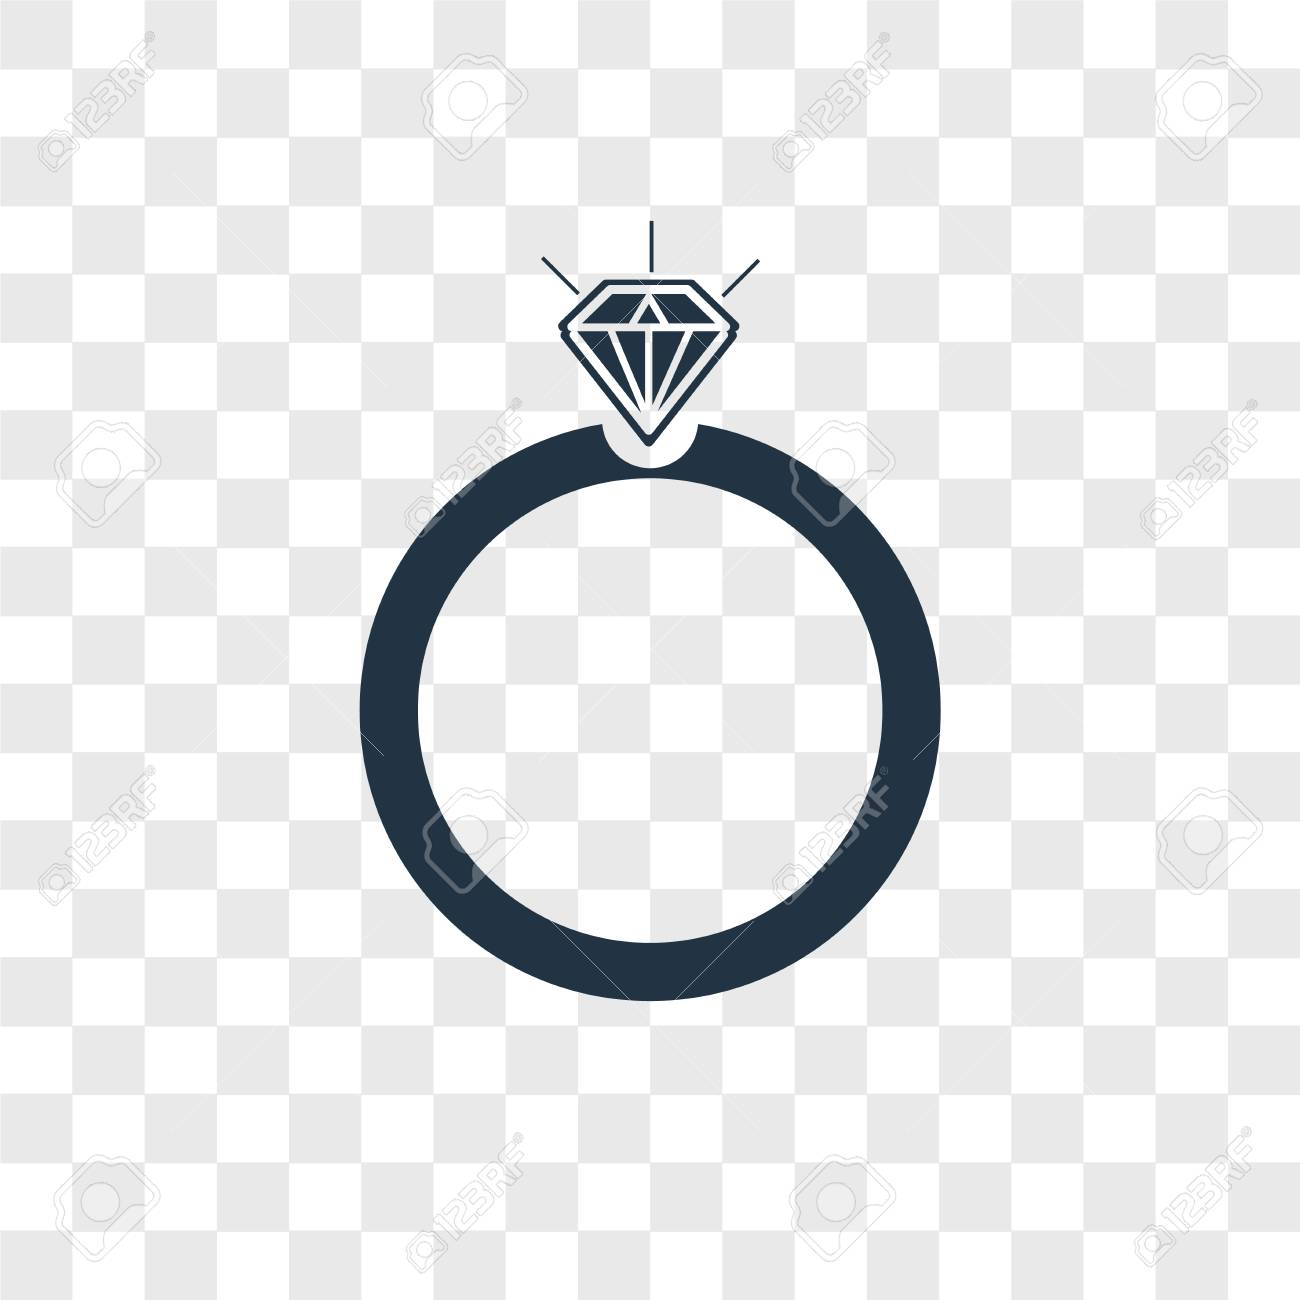 ring vector icon isolated on transparent background ring logo royalty free cliparts vectors and stock illustration image 108318392 ring vector icon isolated on transparent background ring logo